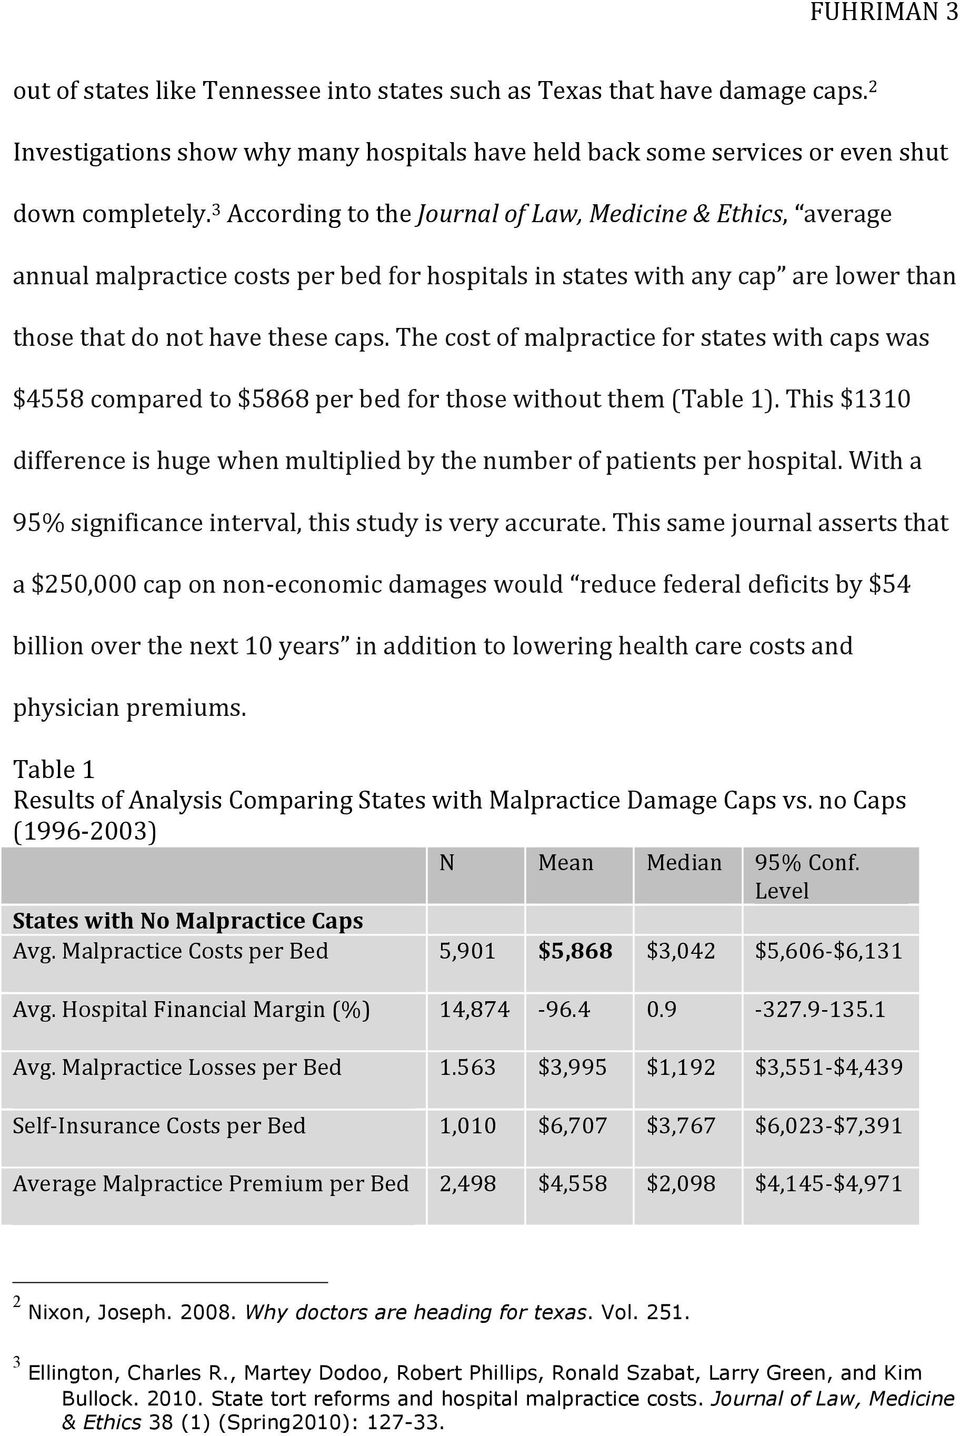 The cost of malpractice for states with caps was $4558 compared to $5868 per bed for those without them (Table 1). This $1310 difference is huge when multiplied by the number of patients per hospital.